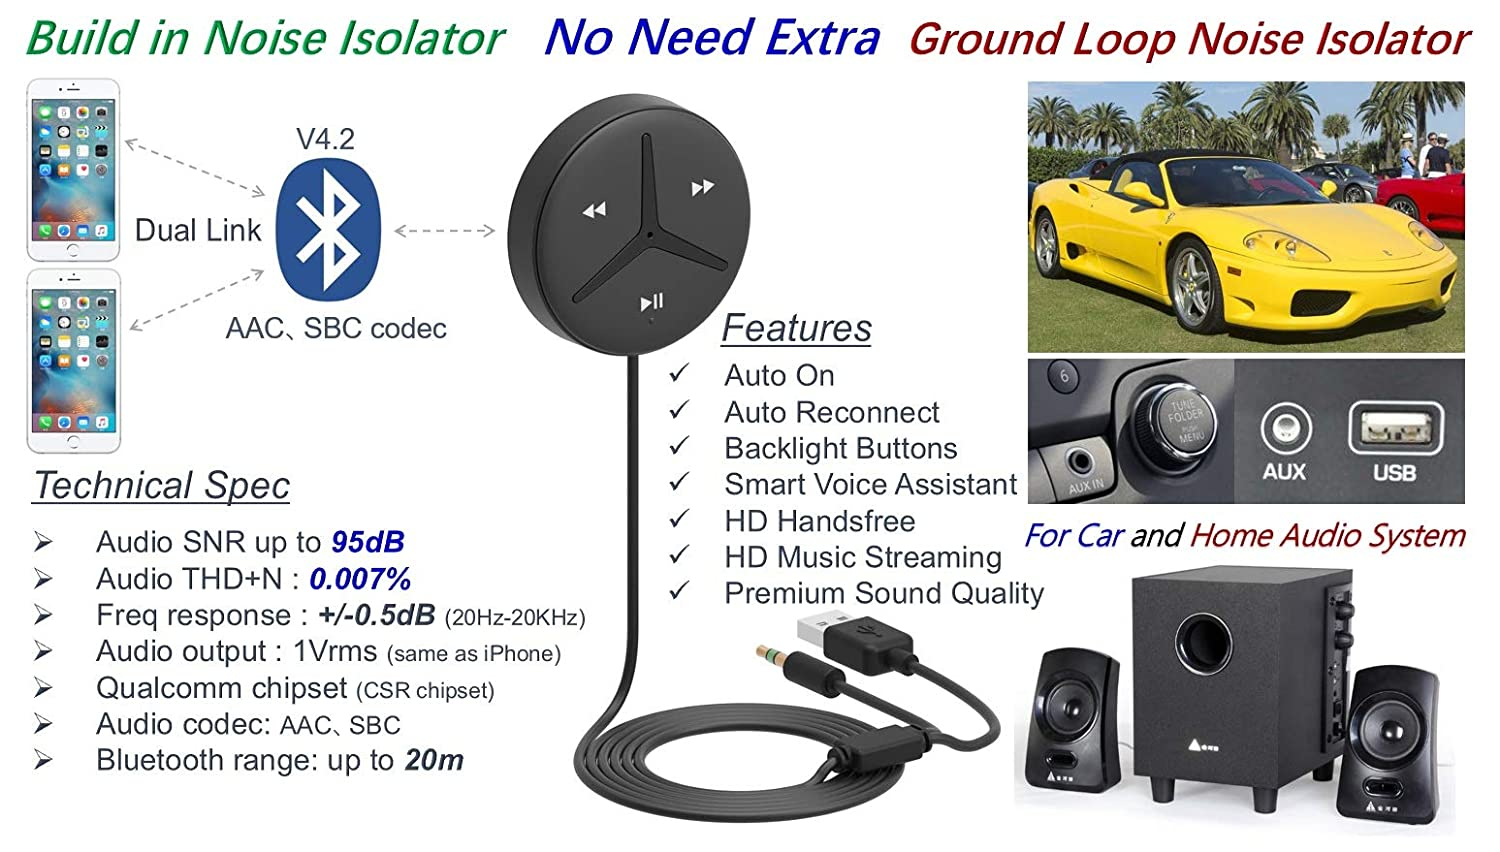 Aston SoundTek A1+,Excellent Sound,Aux Bluetooth Car Kits,Bluetooth Receiver,Smart Voice Assistant,Crystal Clear Handsfree Calls HD Audio Streaming for Car Audio,Build In Ground Loop Noise Isolator Aston Innovations